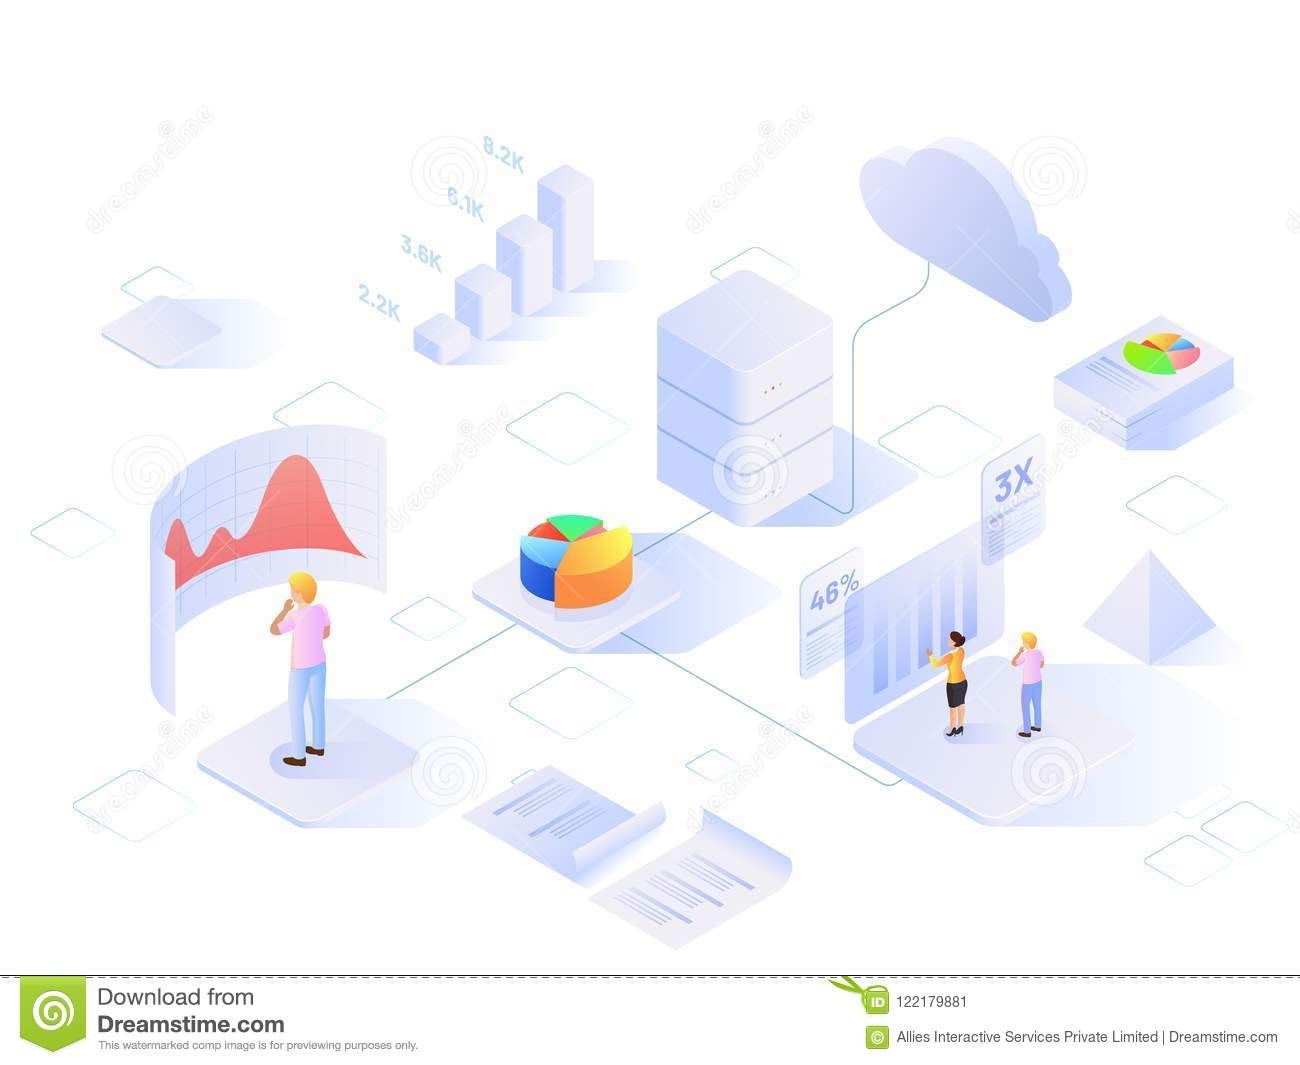 Data Analytics based web template design with isometric view of